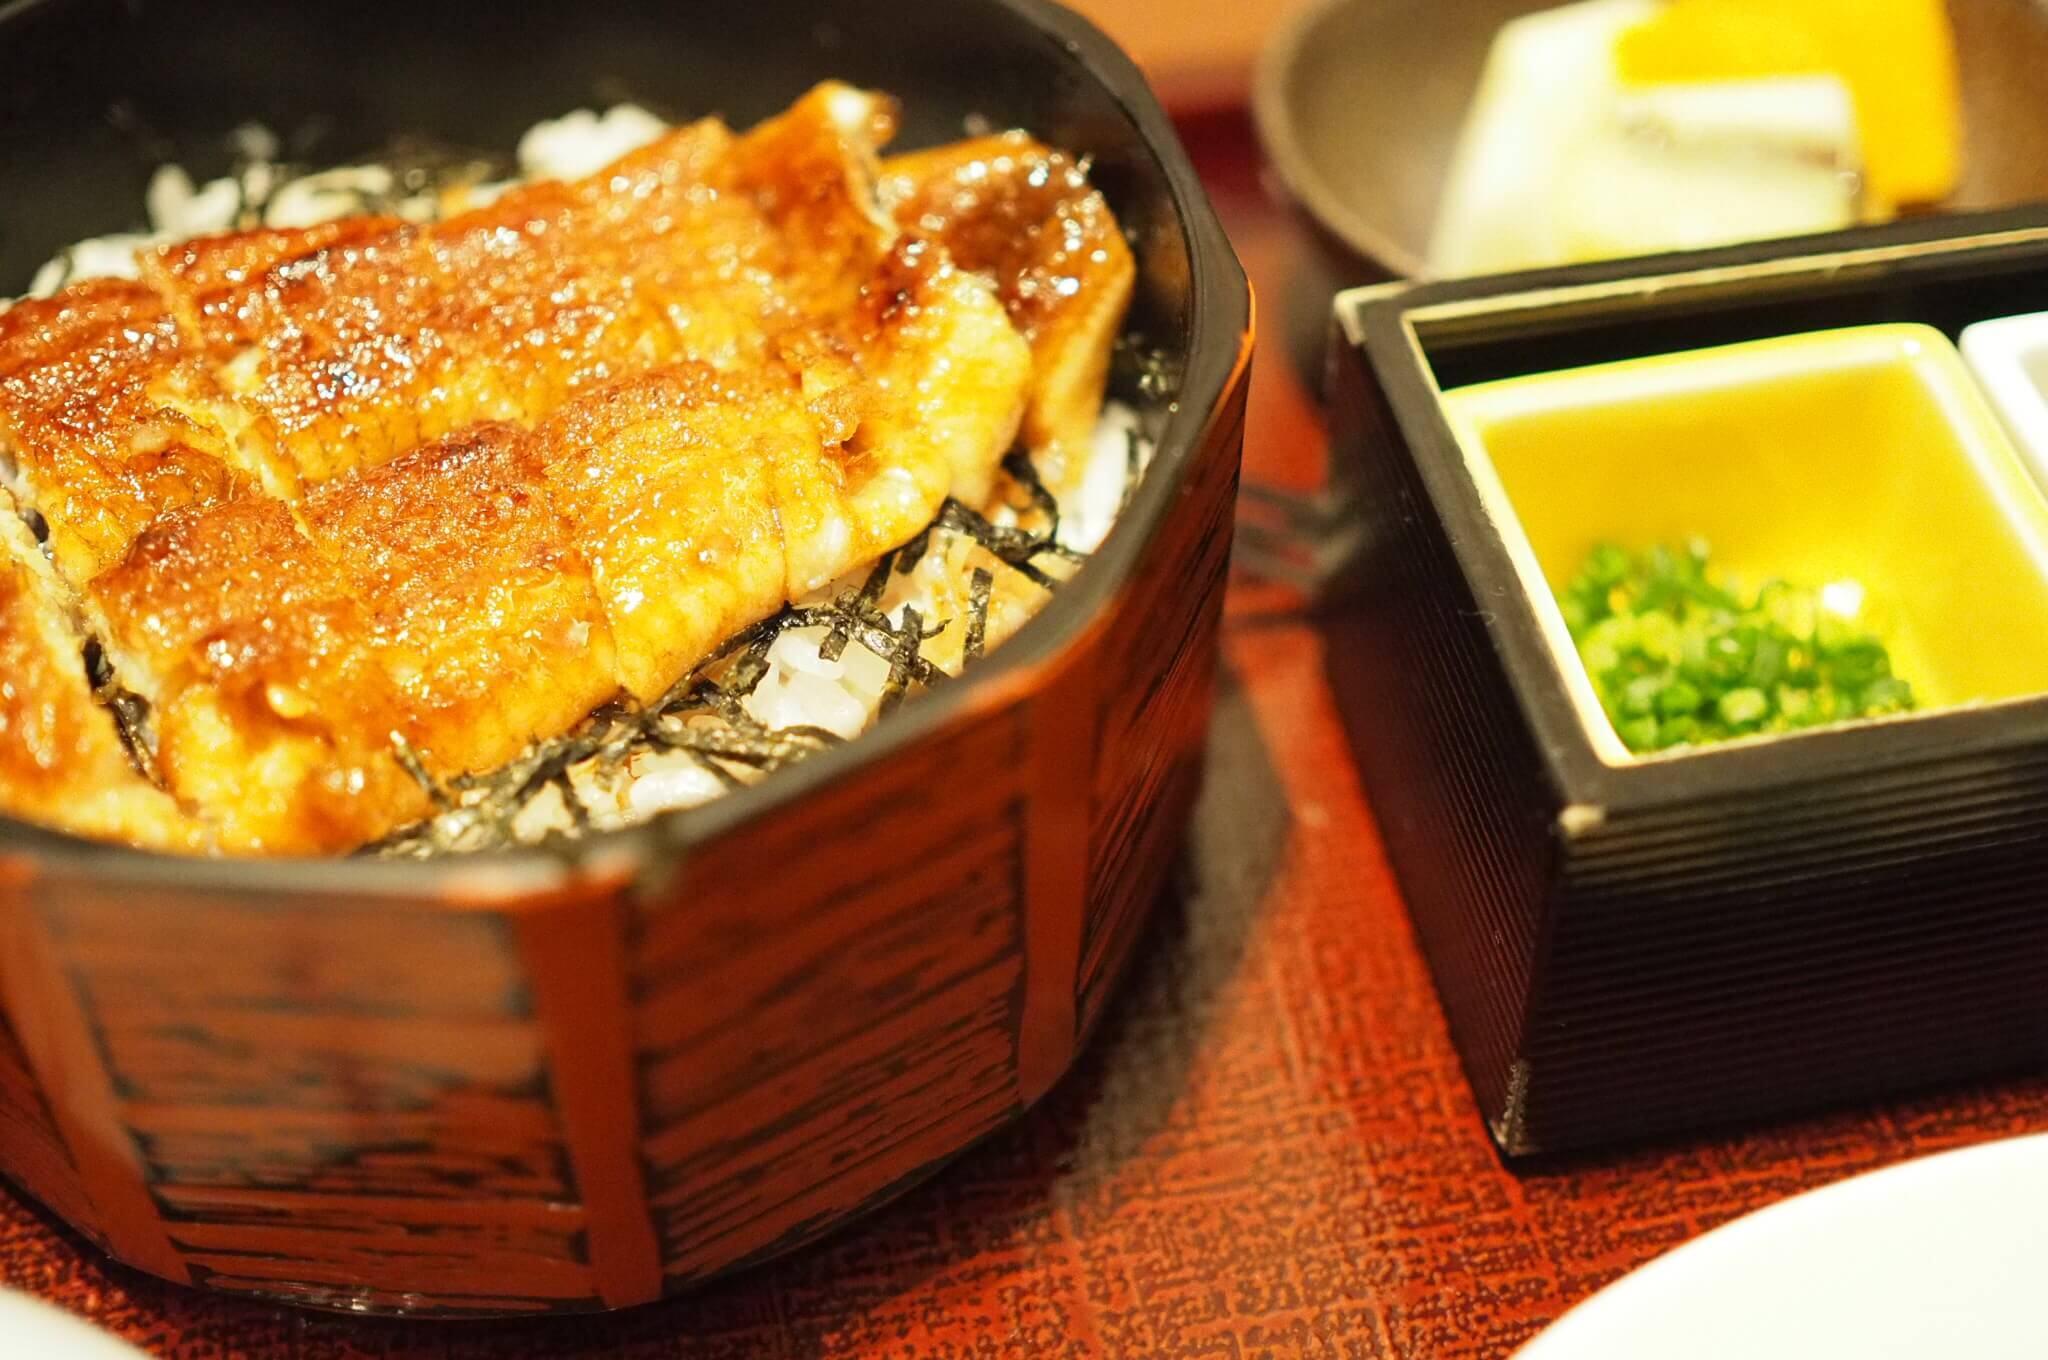 The Best Restaurants to Try Hitsumabushi in Nagoya